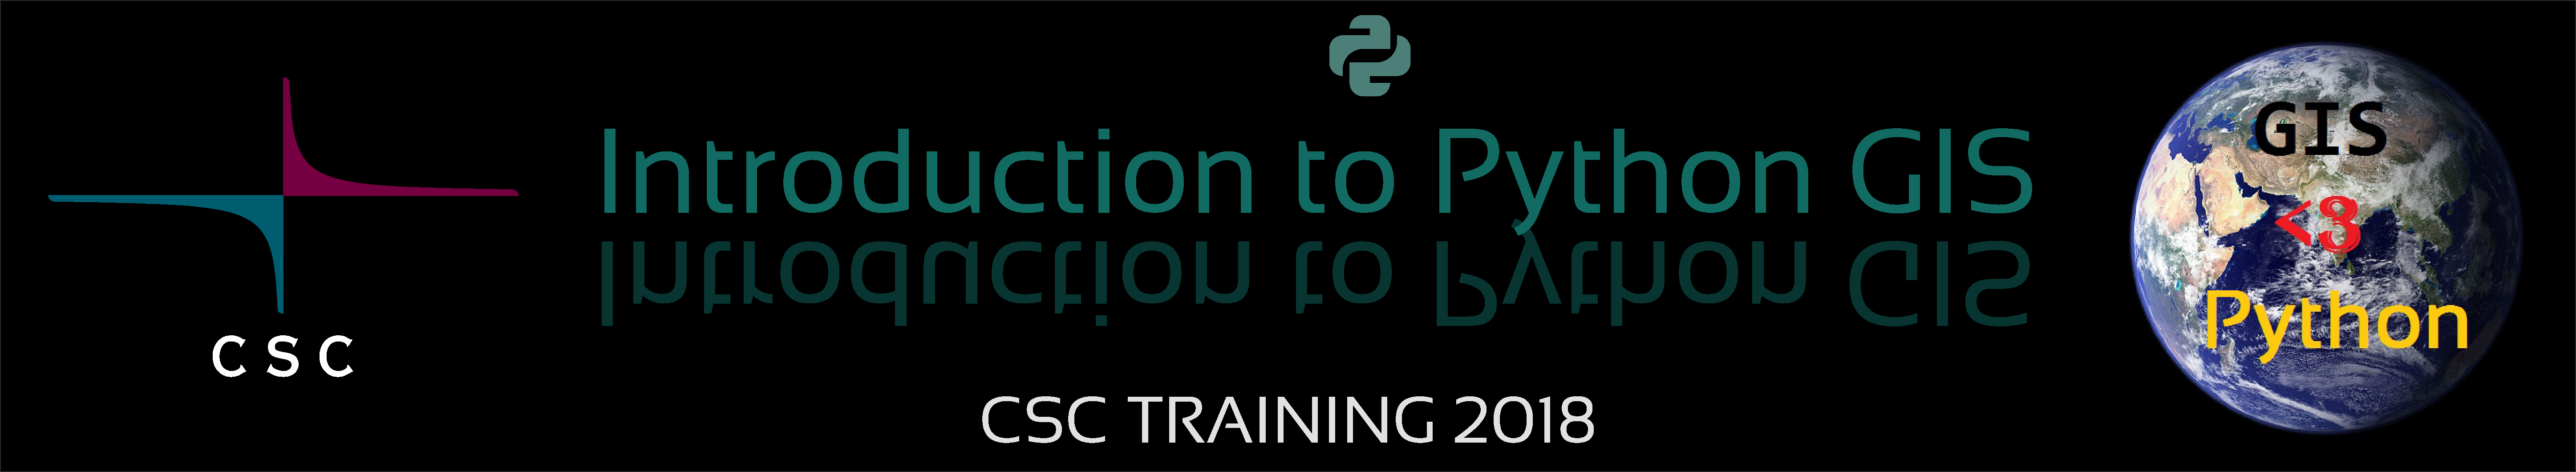 Welcome To Introduction To Python Gis Course 2018 Intro To